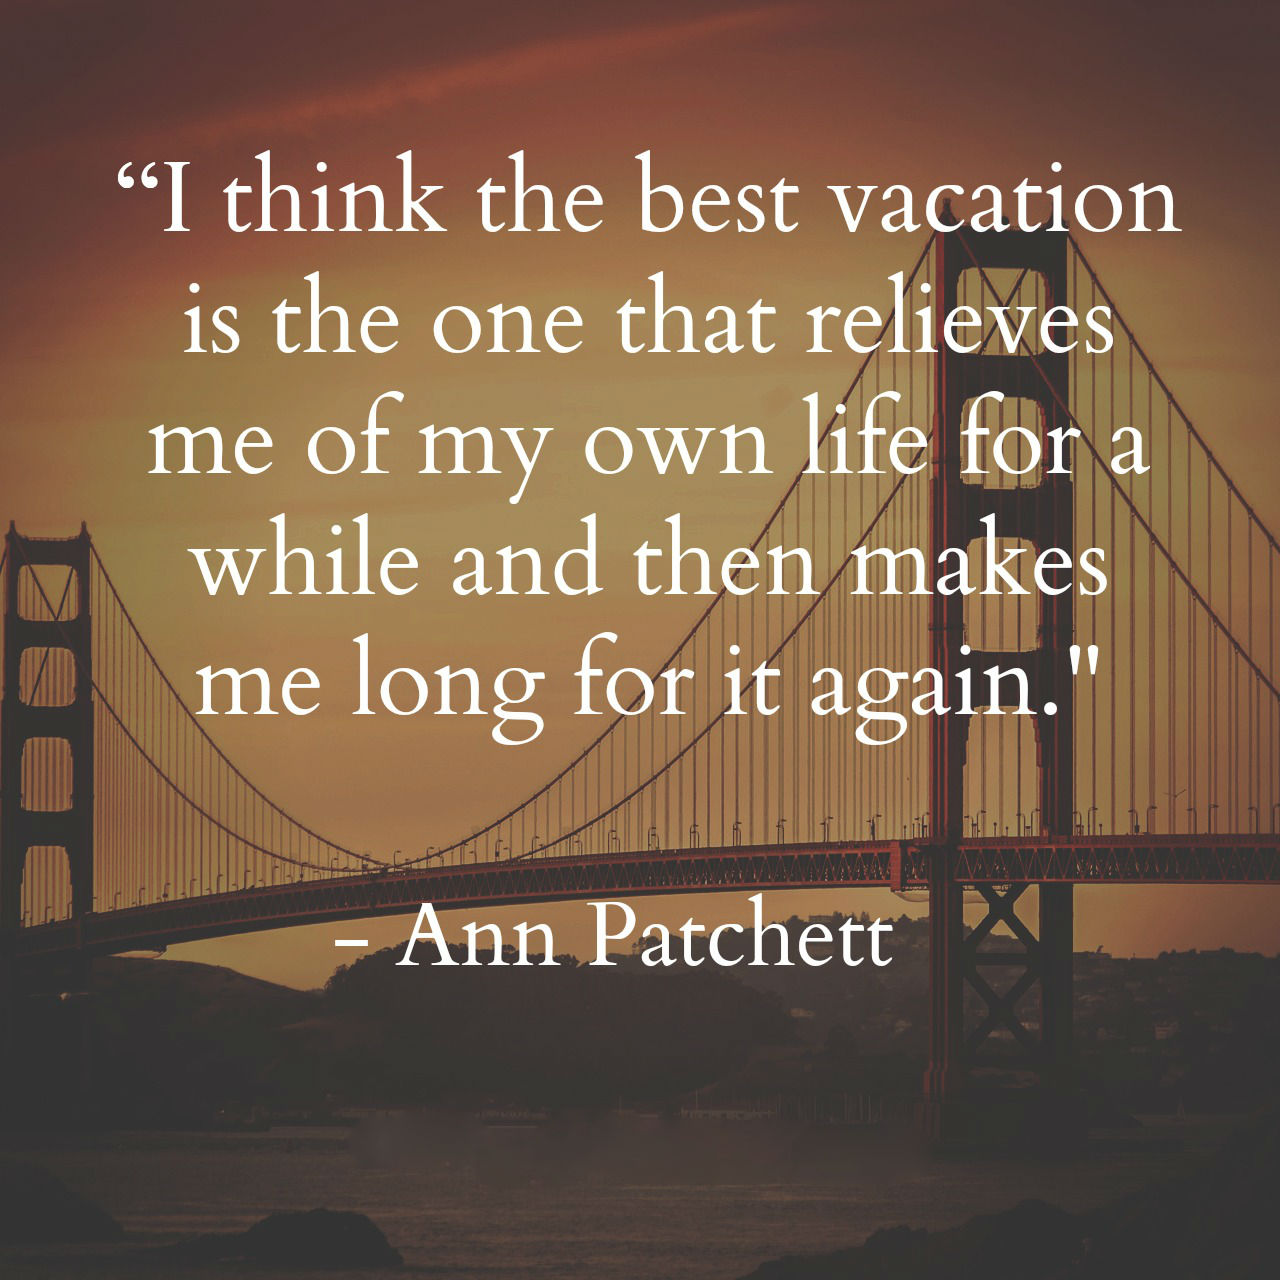 Ann Patchett Quotes And Sayings Images